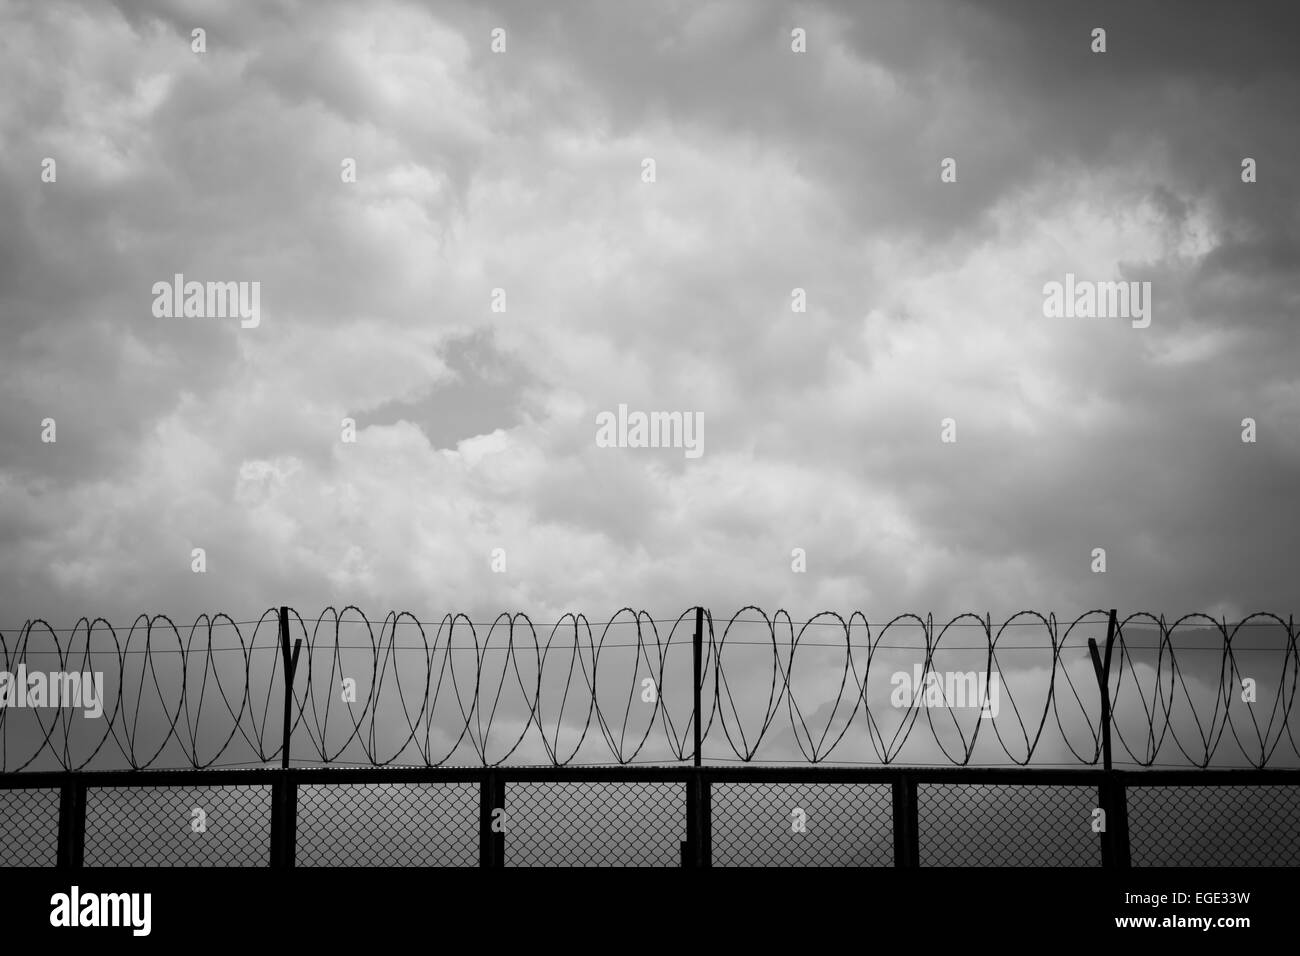 barbed wire fence - Stock Image